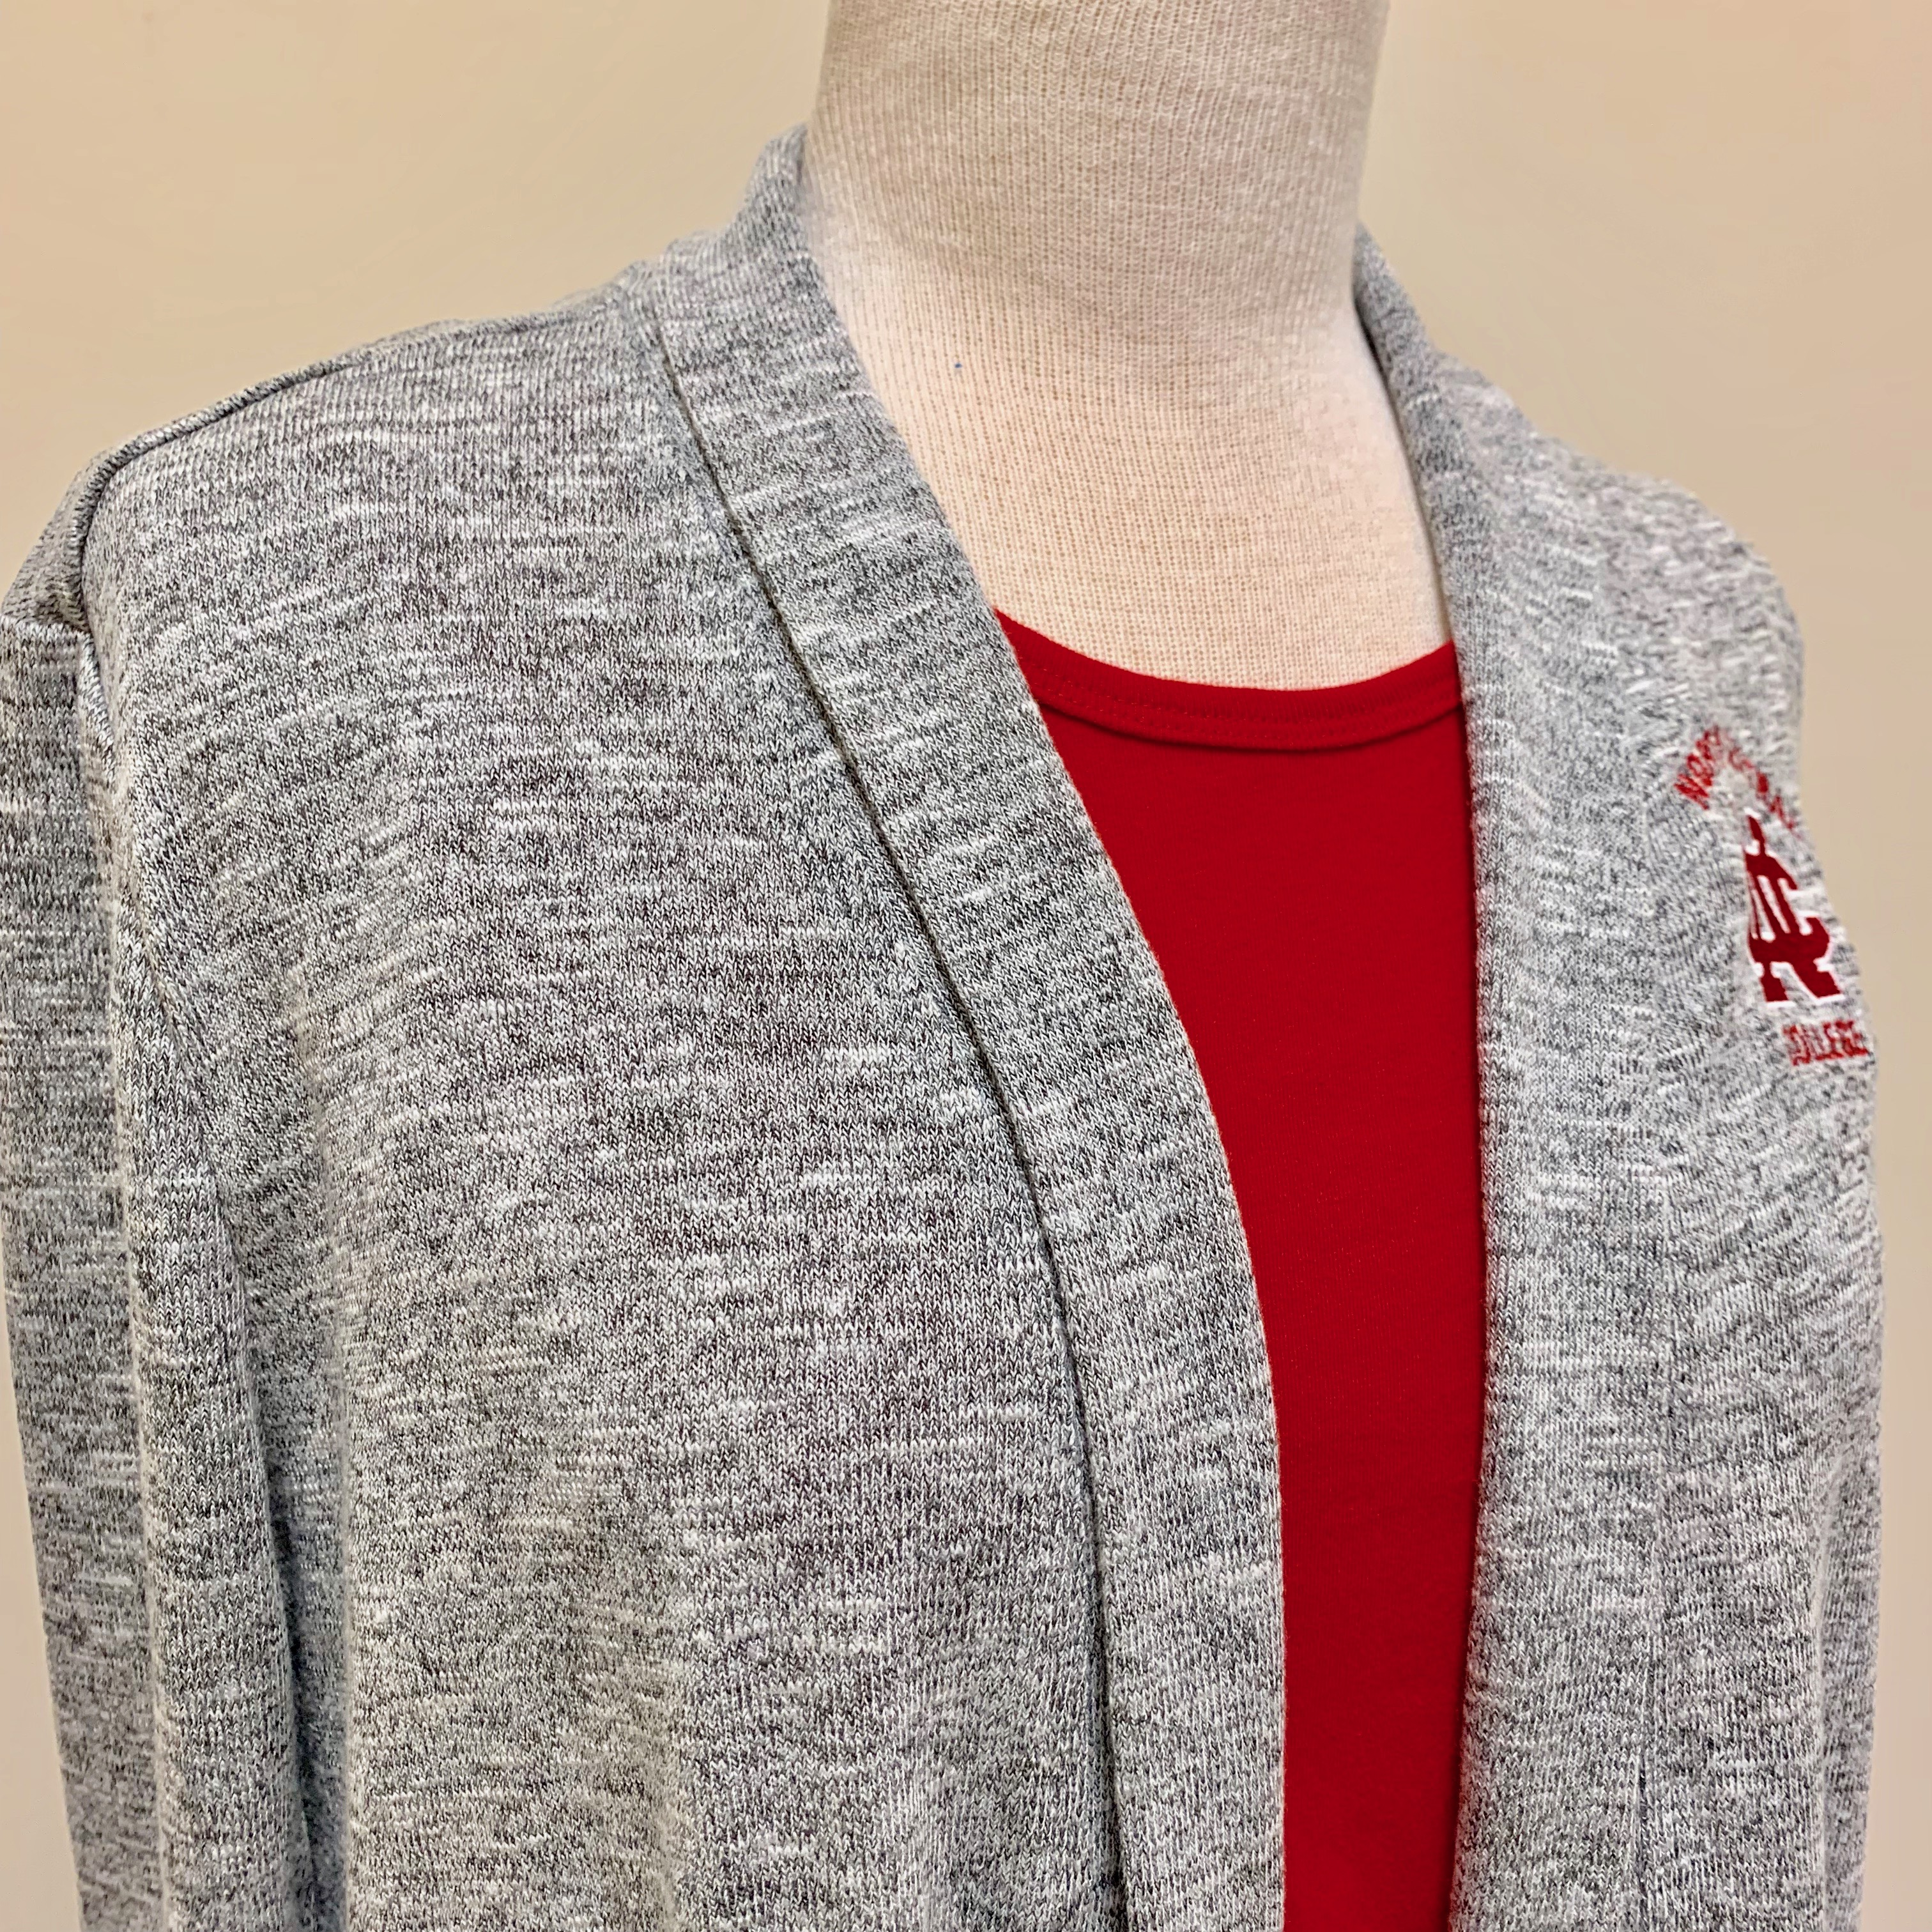 Alternative Image for the Women's Easy Fit Cardigan w/ pockets product